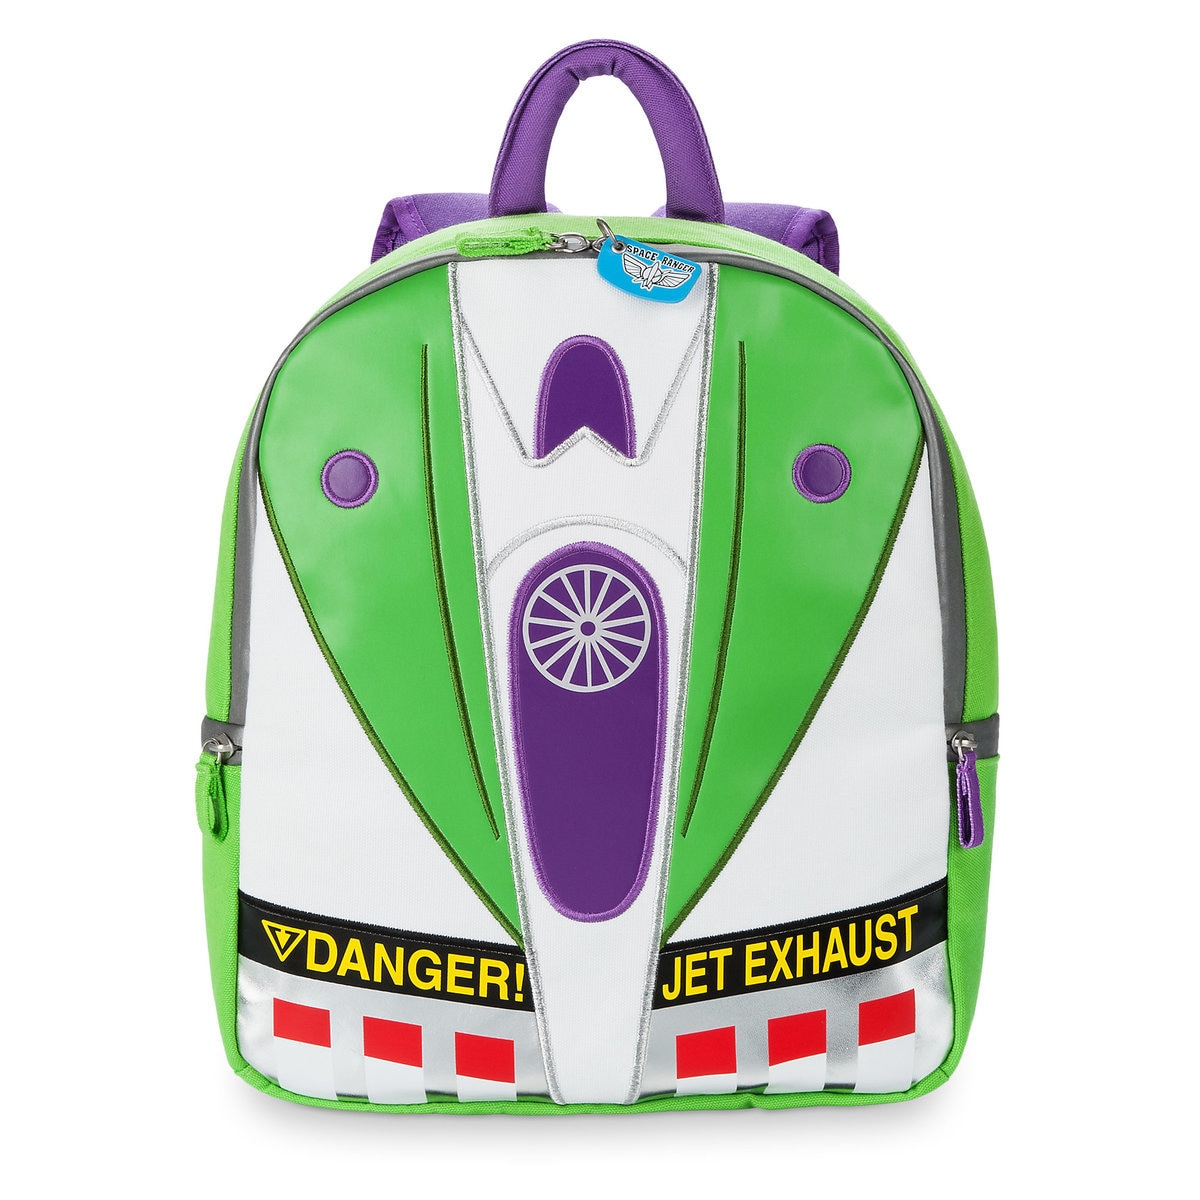 e3ee97c9d43 Product Image of Buzz Lightyear Backpack   1